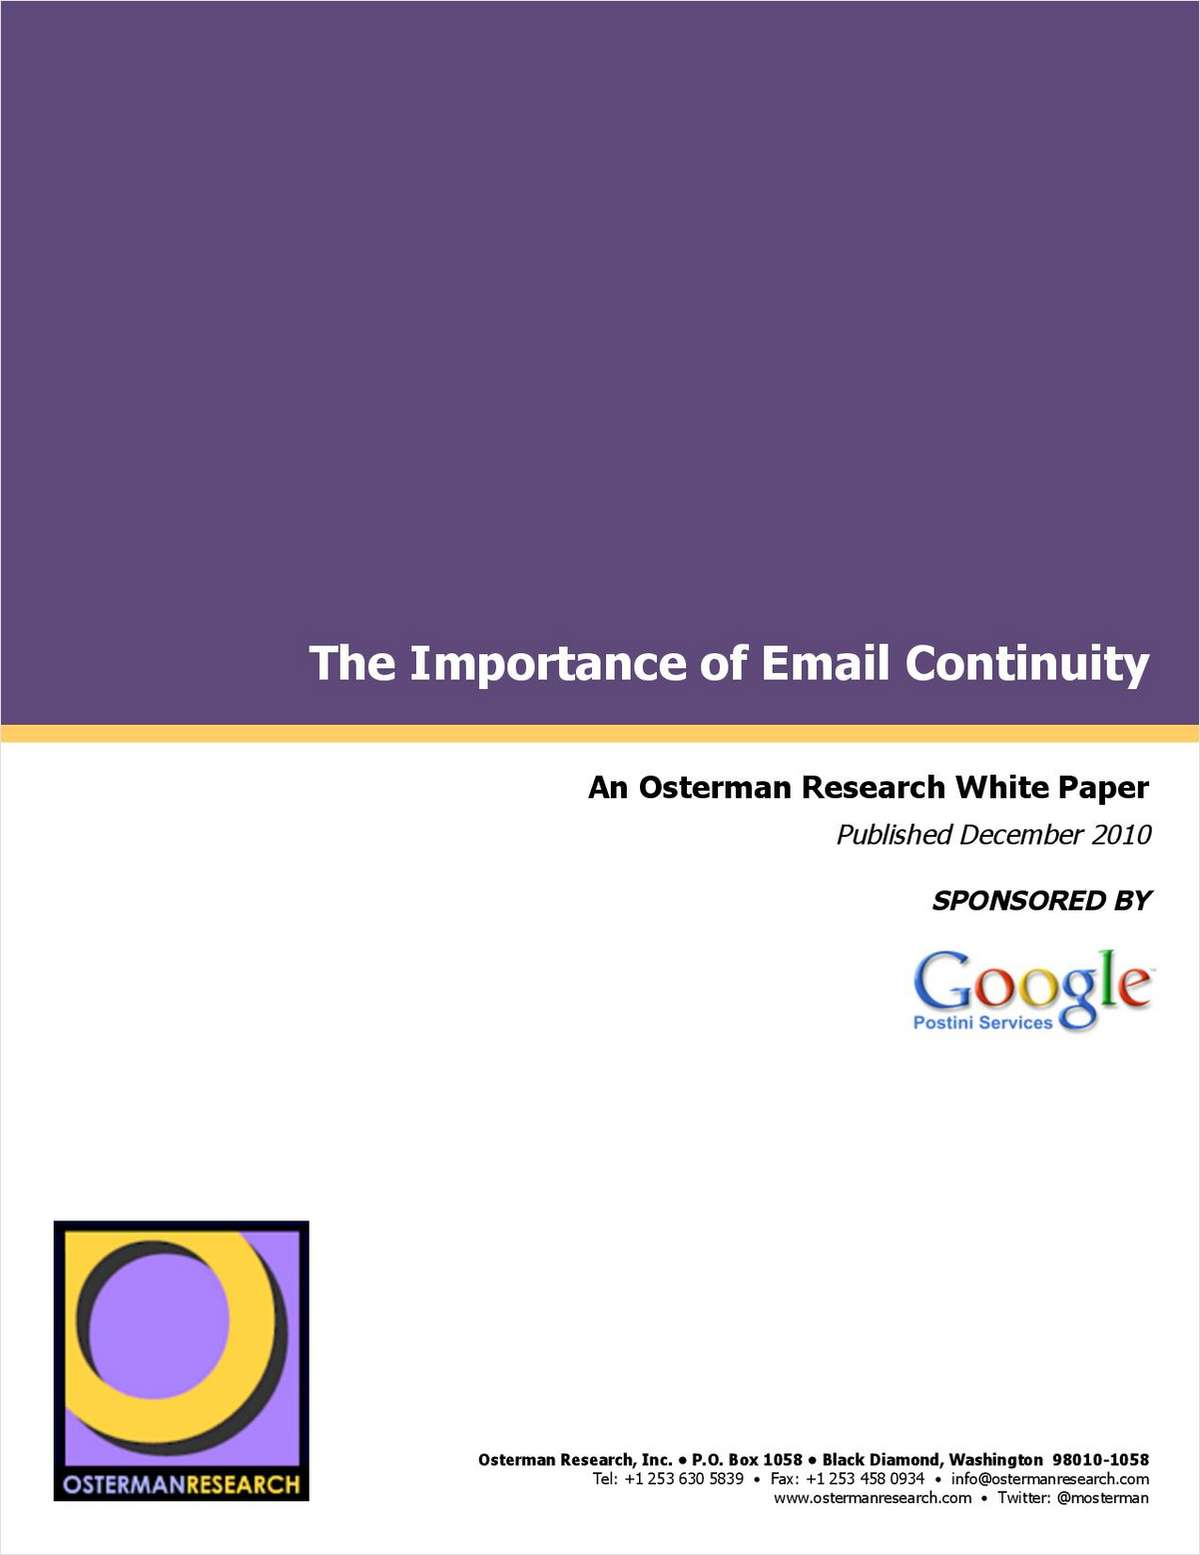 The Importance of Email Continuity